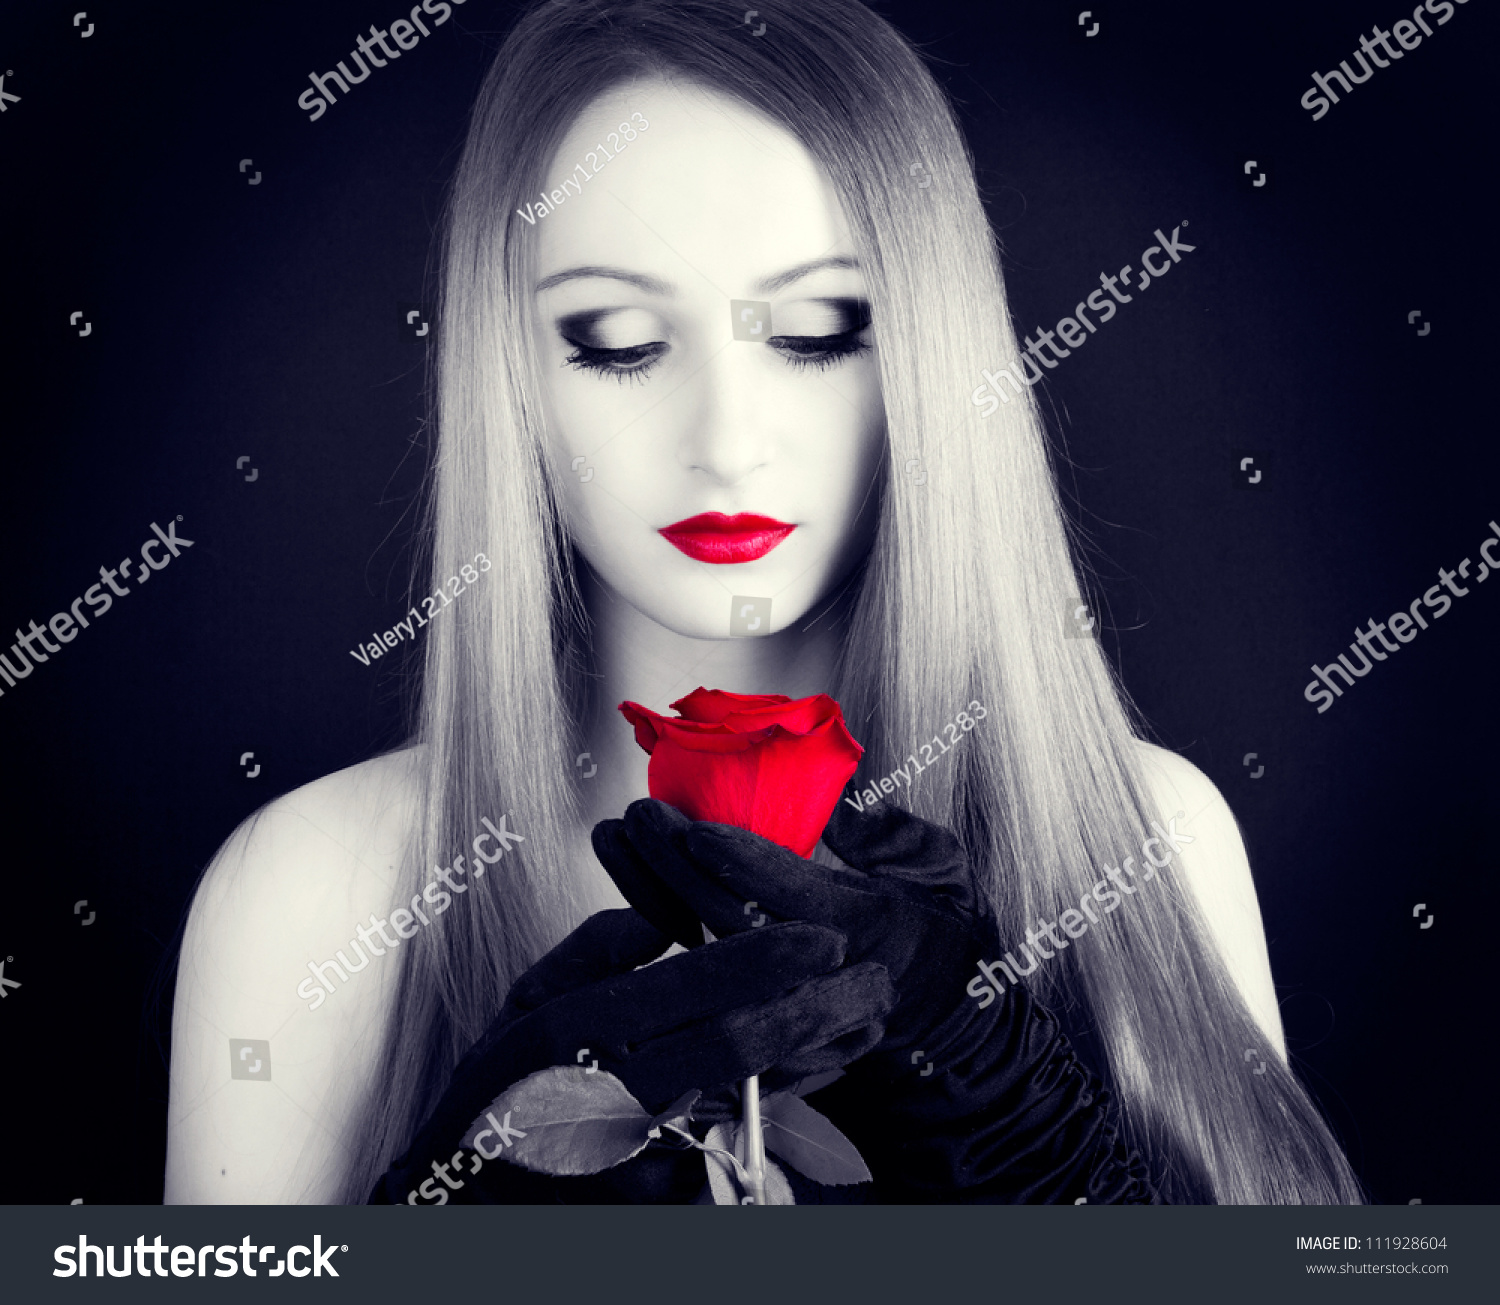 saint rose jewish women dating site Start online dating with match uk sign up for free and get access to dating profiles of singles, take the opportunity to attend match singles nights and other dating.